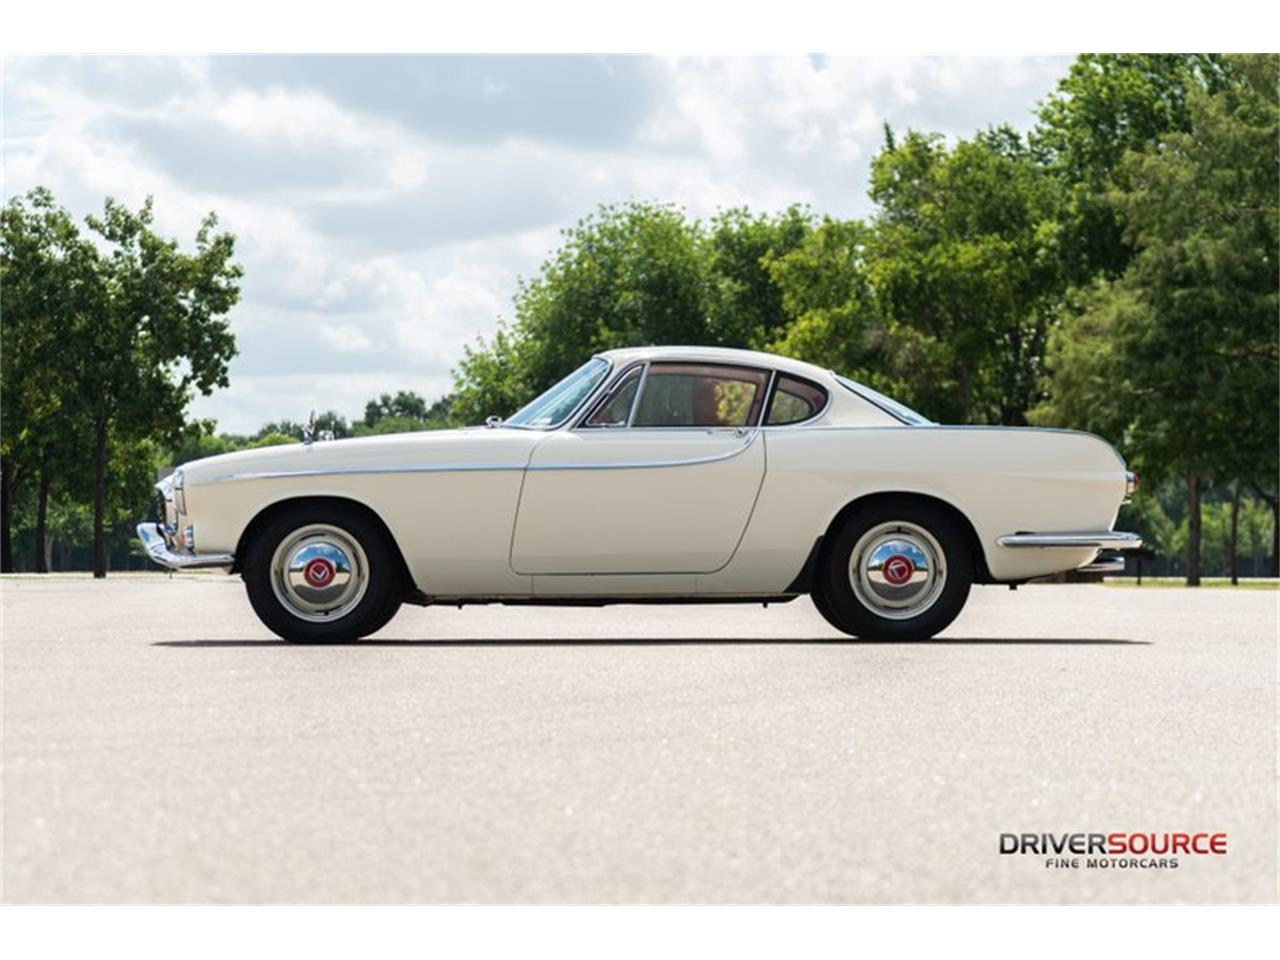 Large Picture of 1964 P1800E located in Texas Offered by Driversource - NNM3